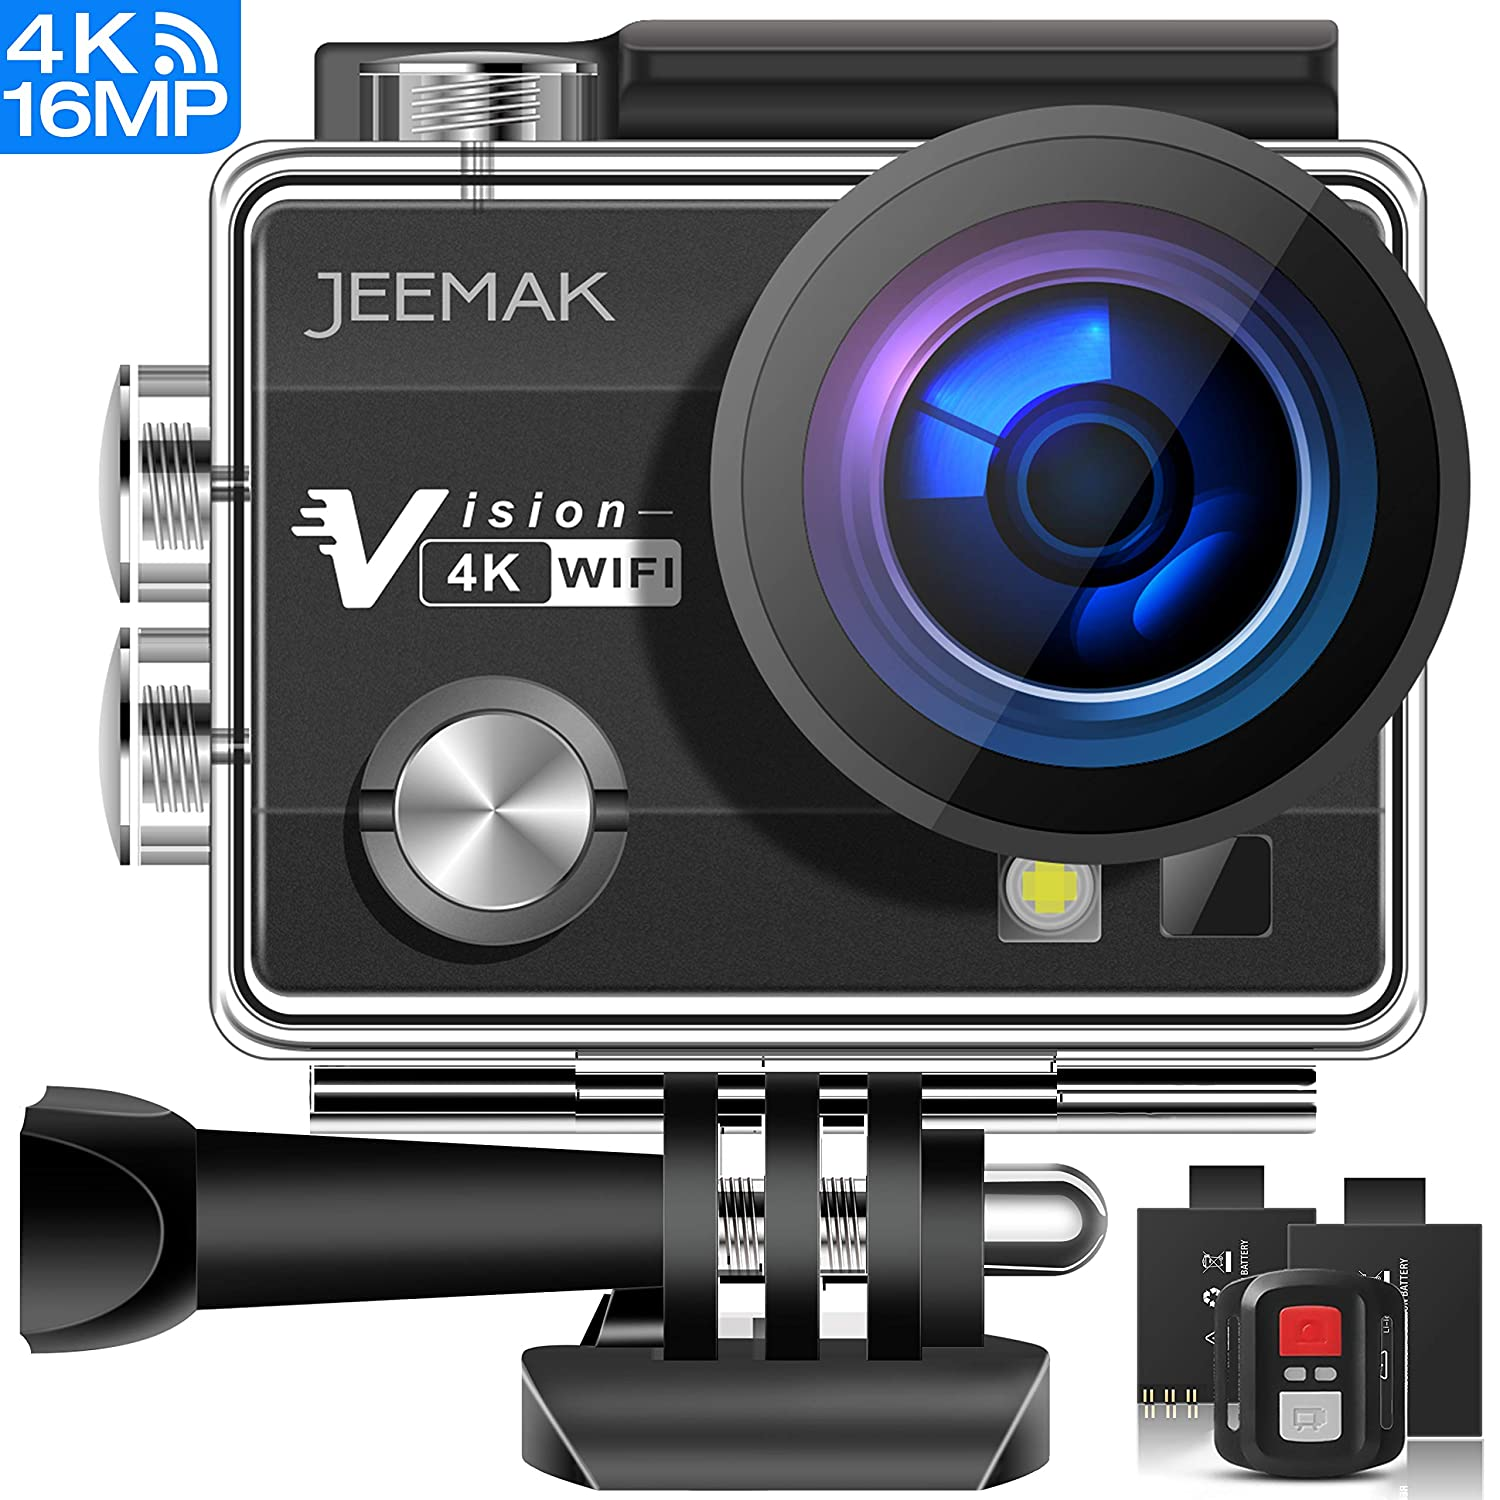 Black JEEMAK ACT74R Action Camera 16MP 4K WiFi Waterproof Sports Camera with Remote Control